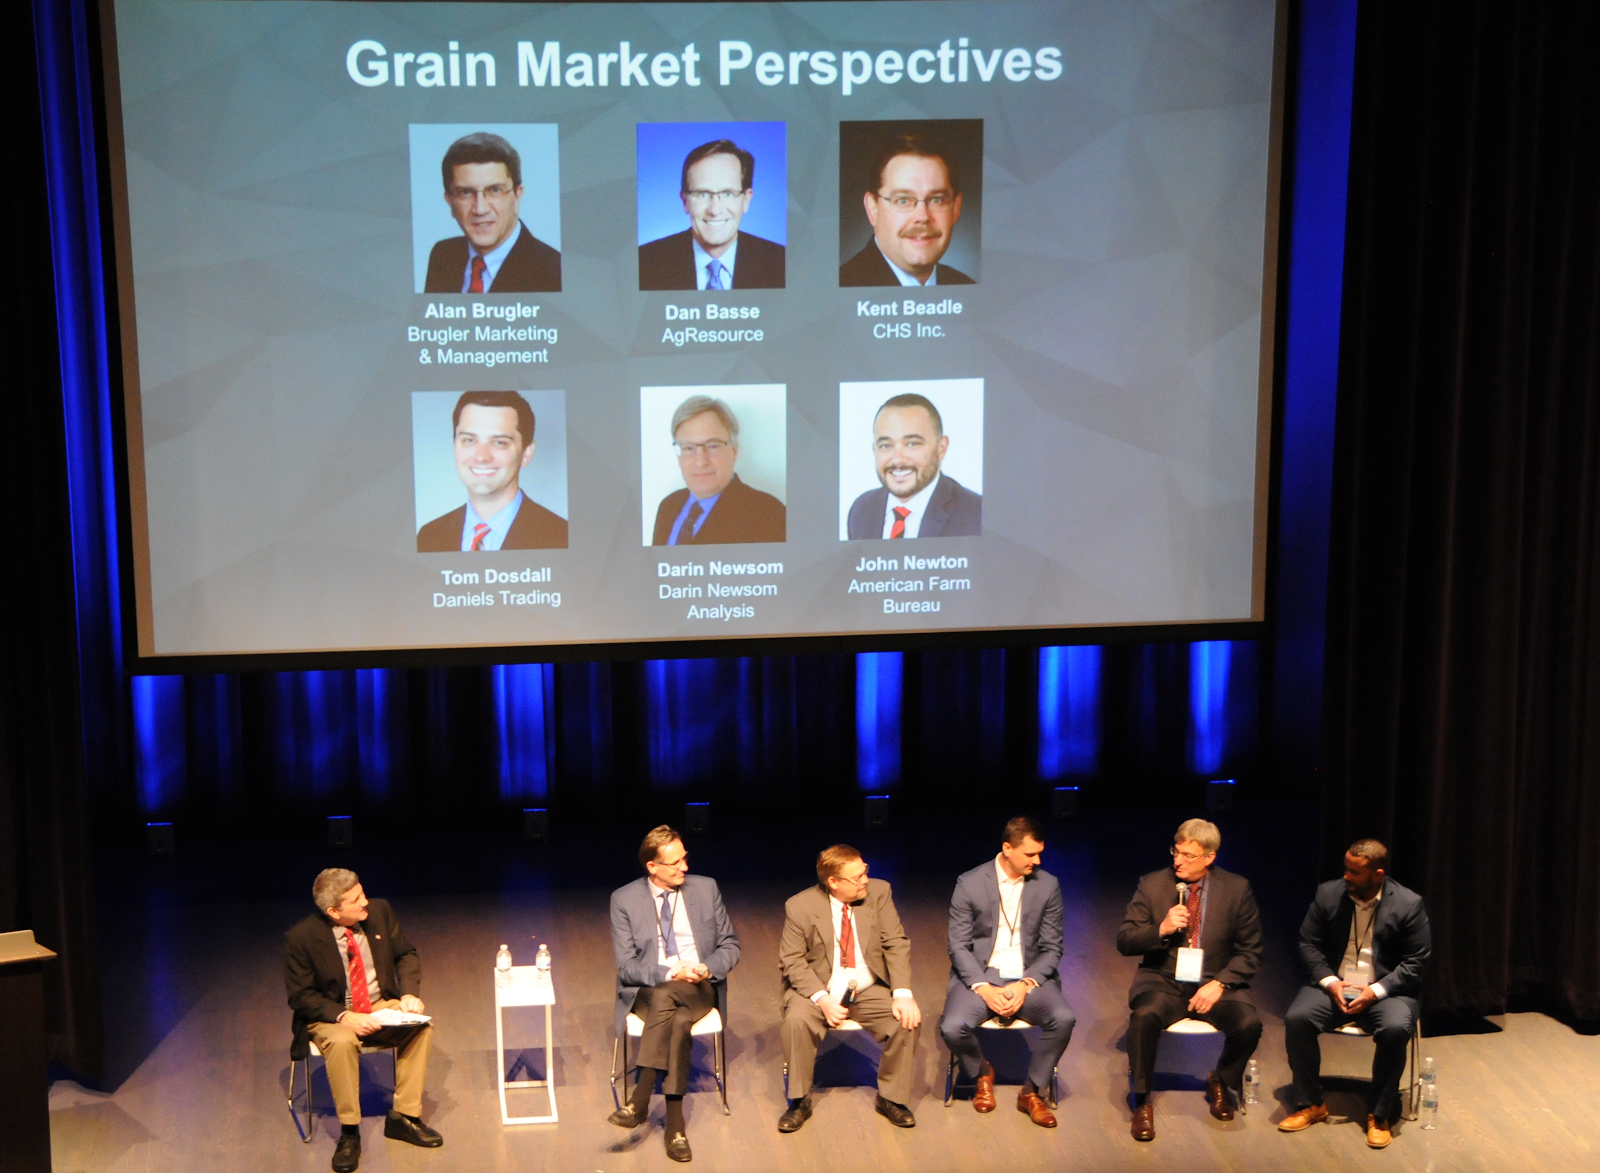 Global Agriculture Conference cmdtyExchange Grain Market Perspectives Panel